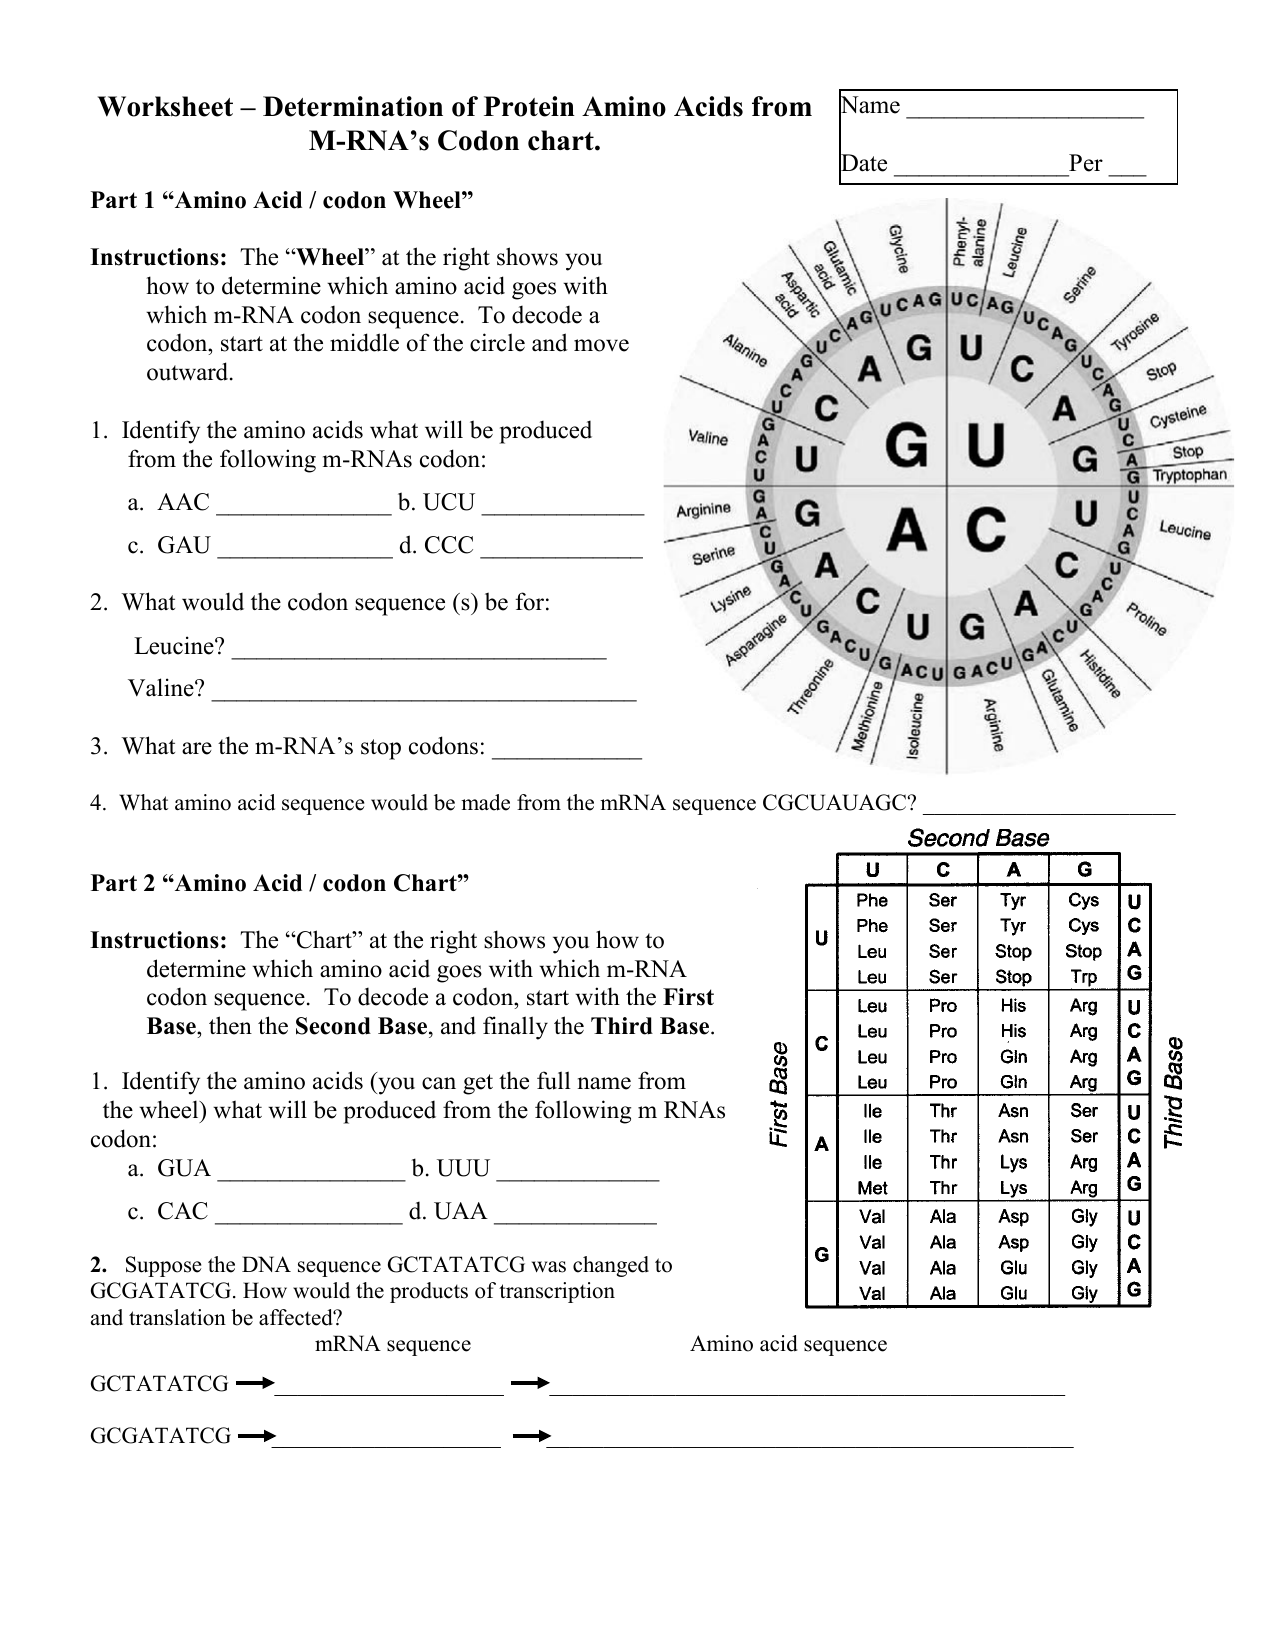 Worksheet Determination Of Protein Amino Acids From Mrna Codon